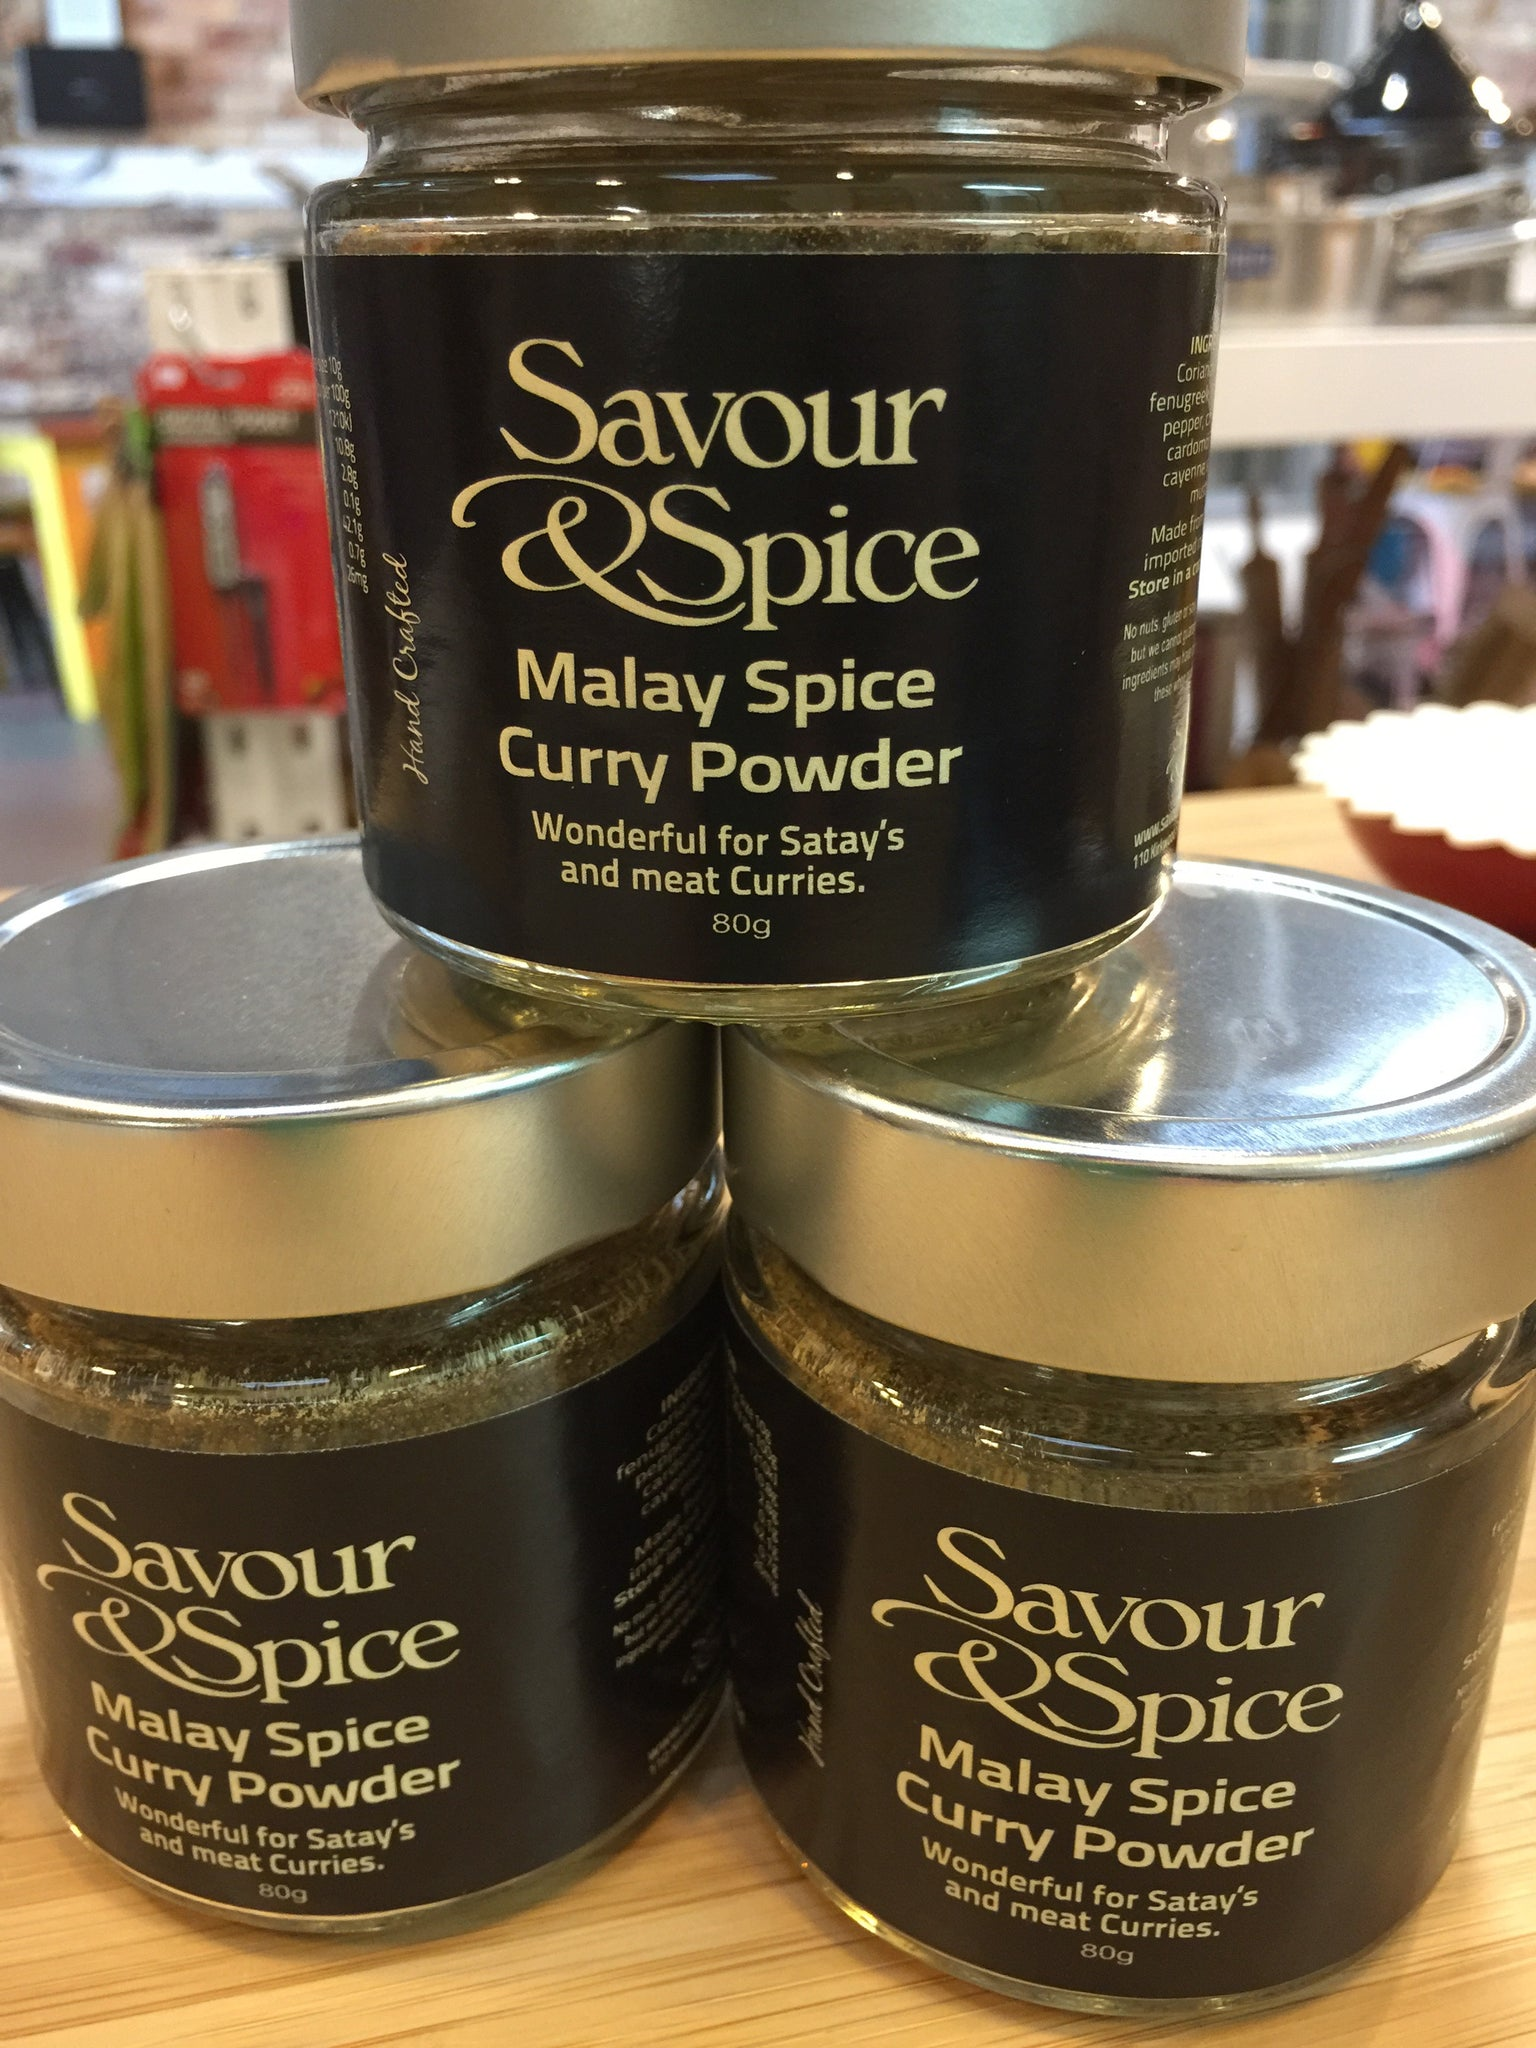 Malay Spice Curry Powder